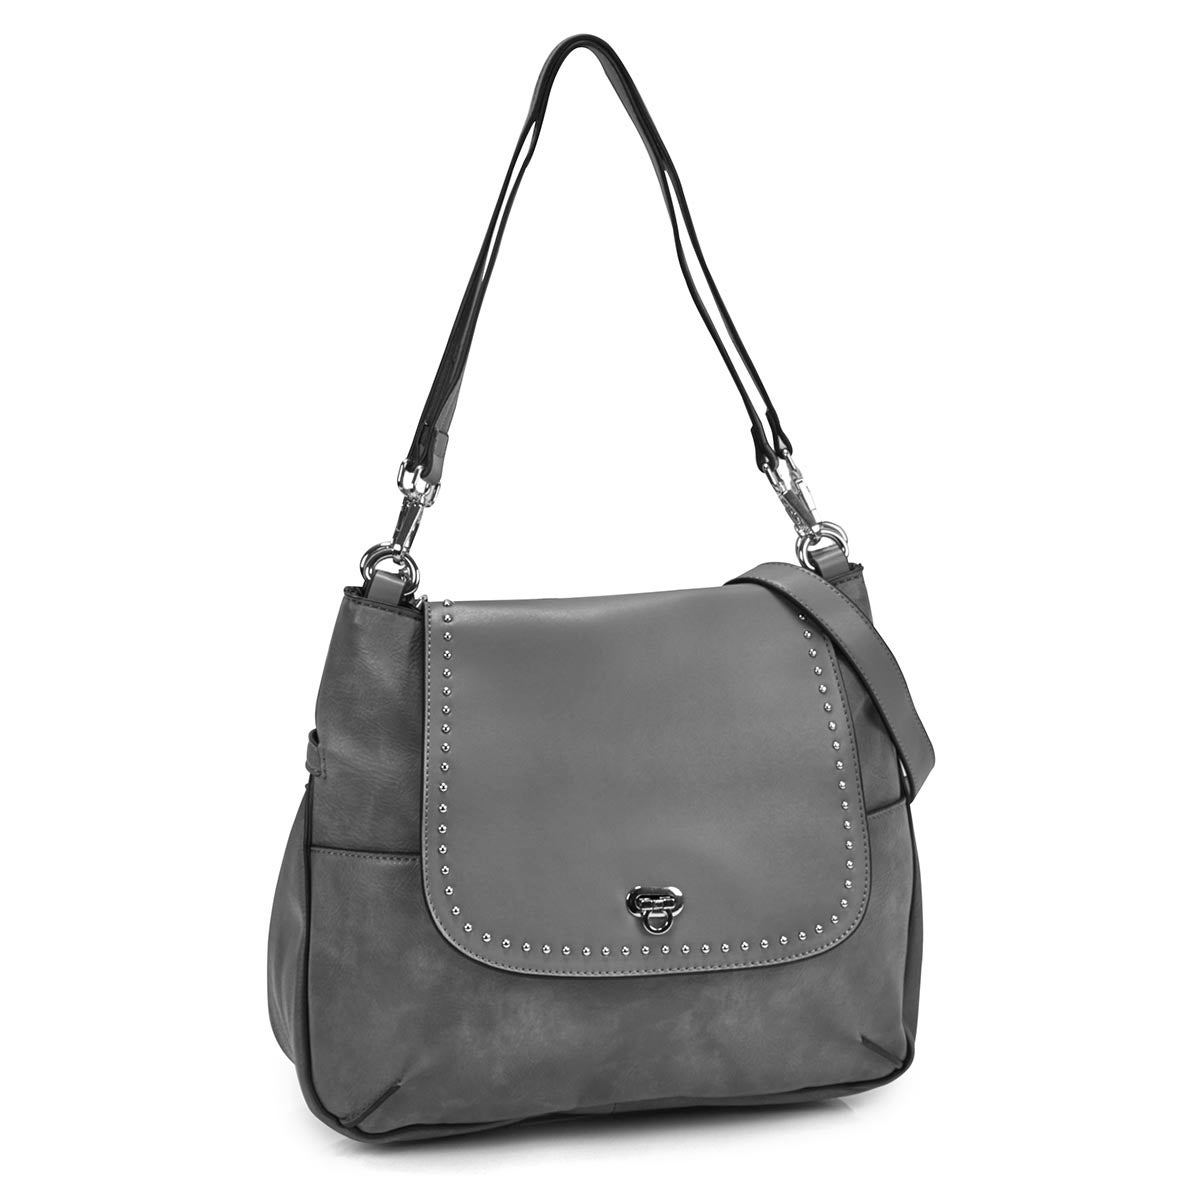 Women's DAISY grey hobo with crossbody strap